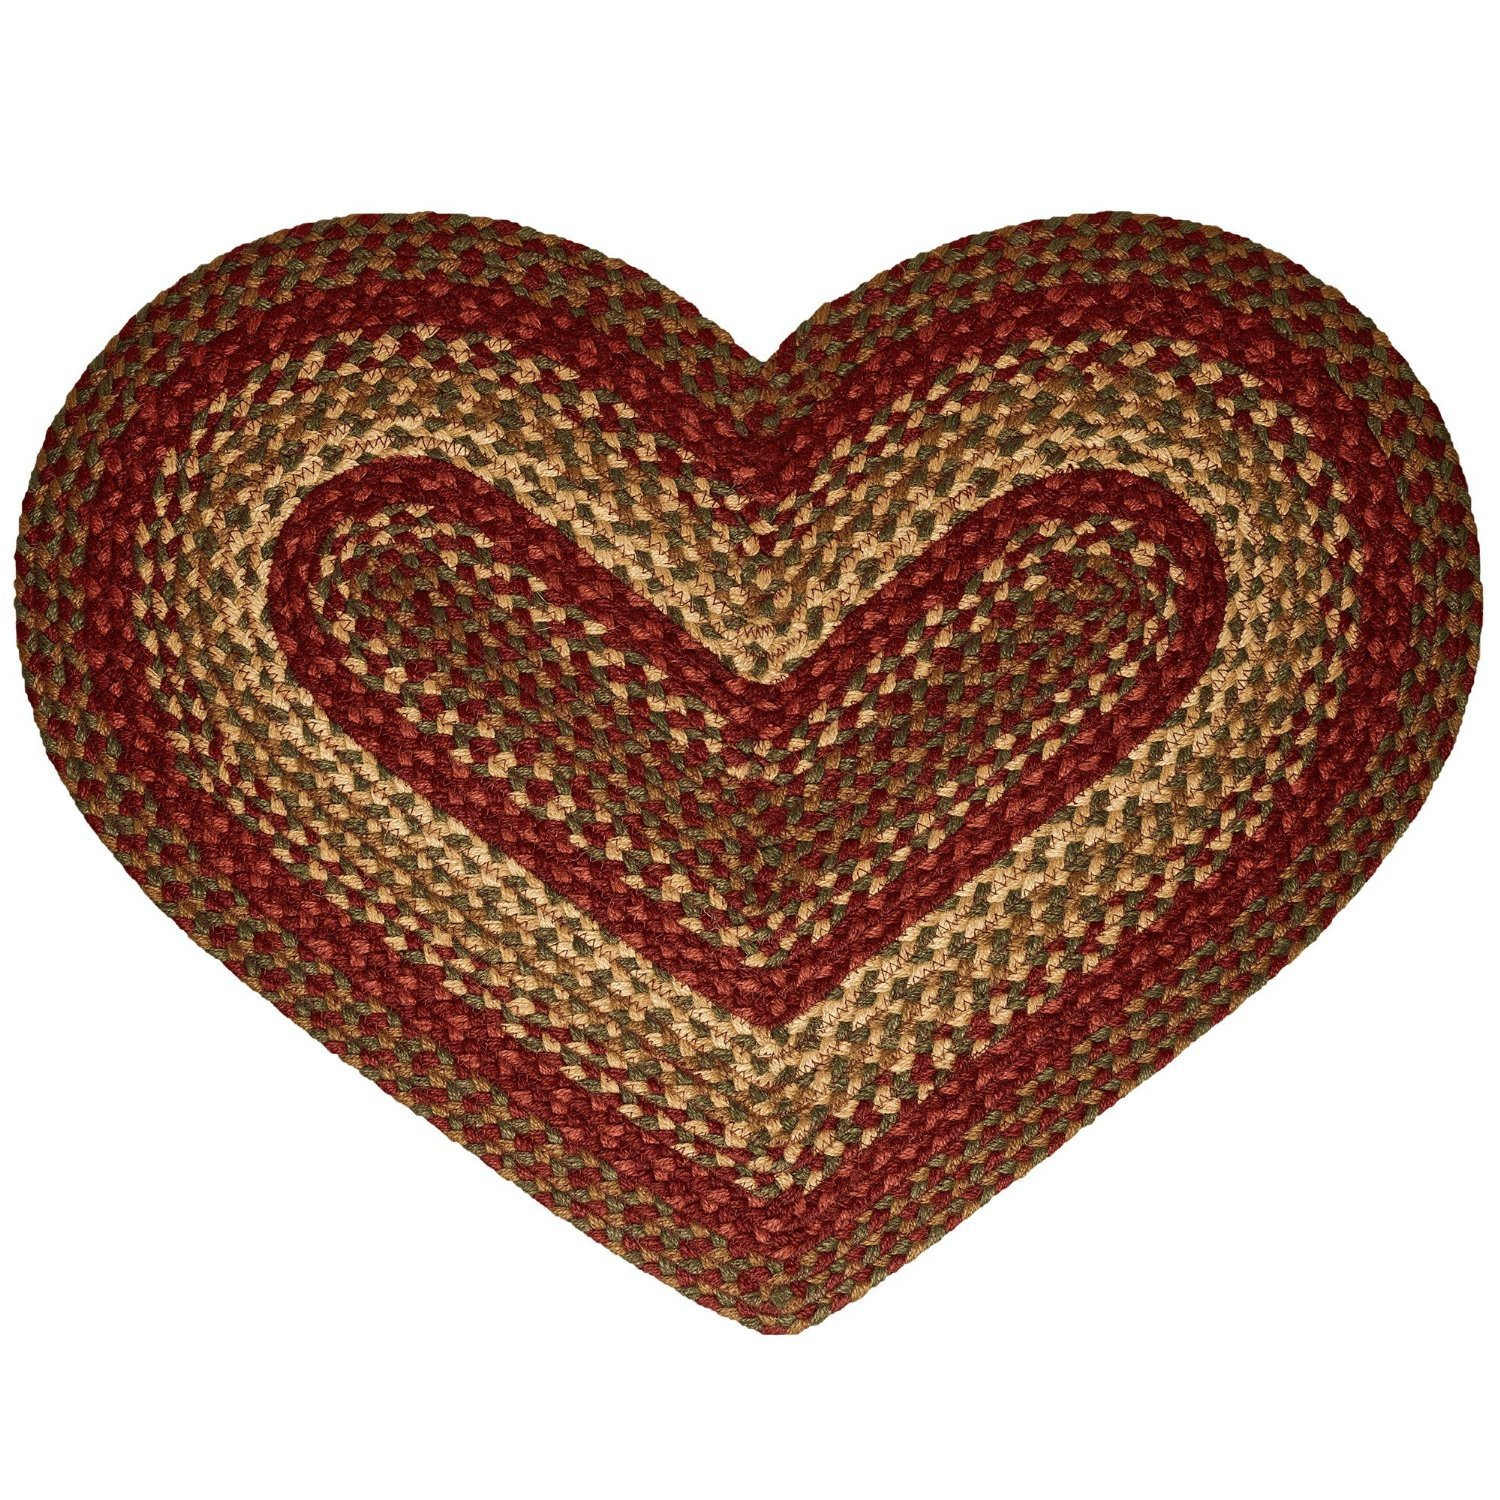 cinnamon heart shaped braided rug kitchen dining